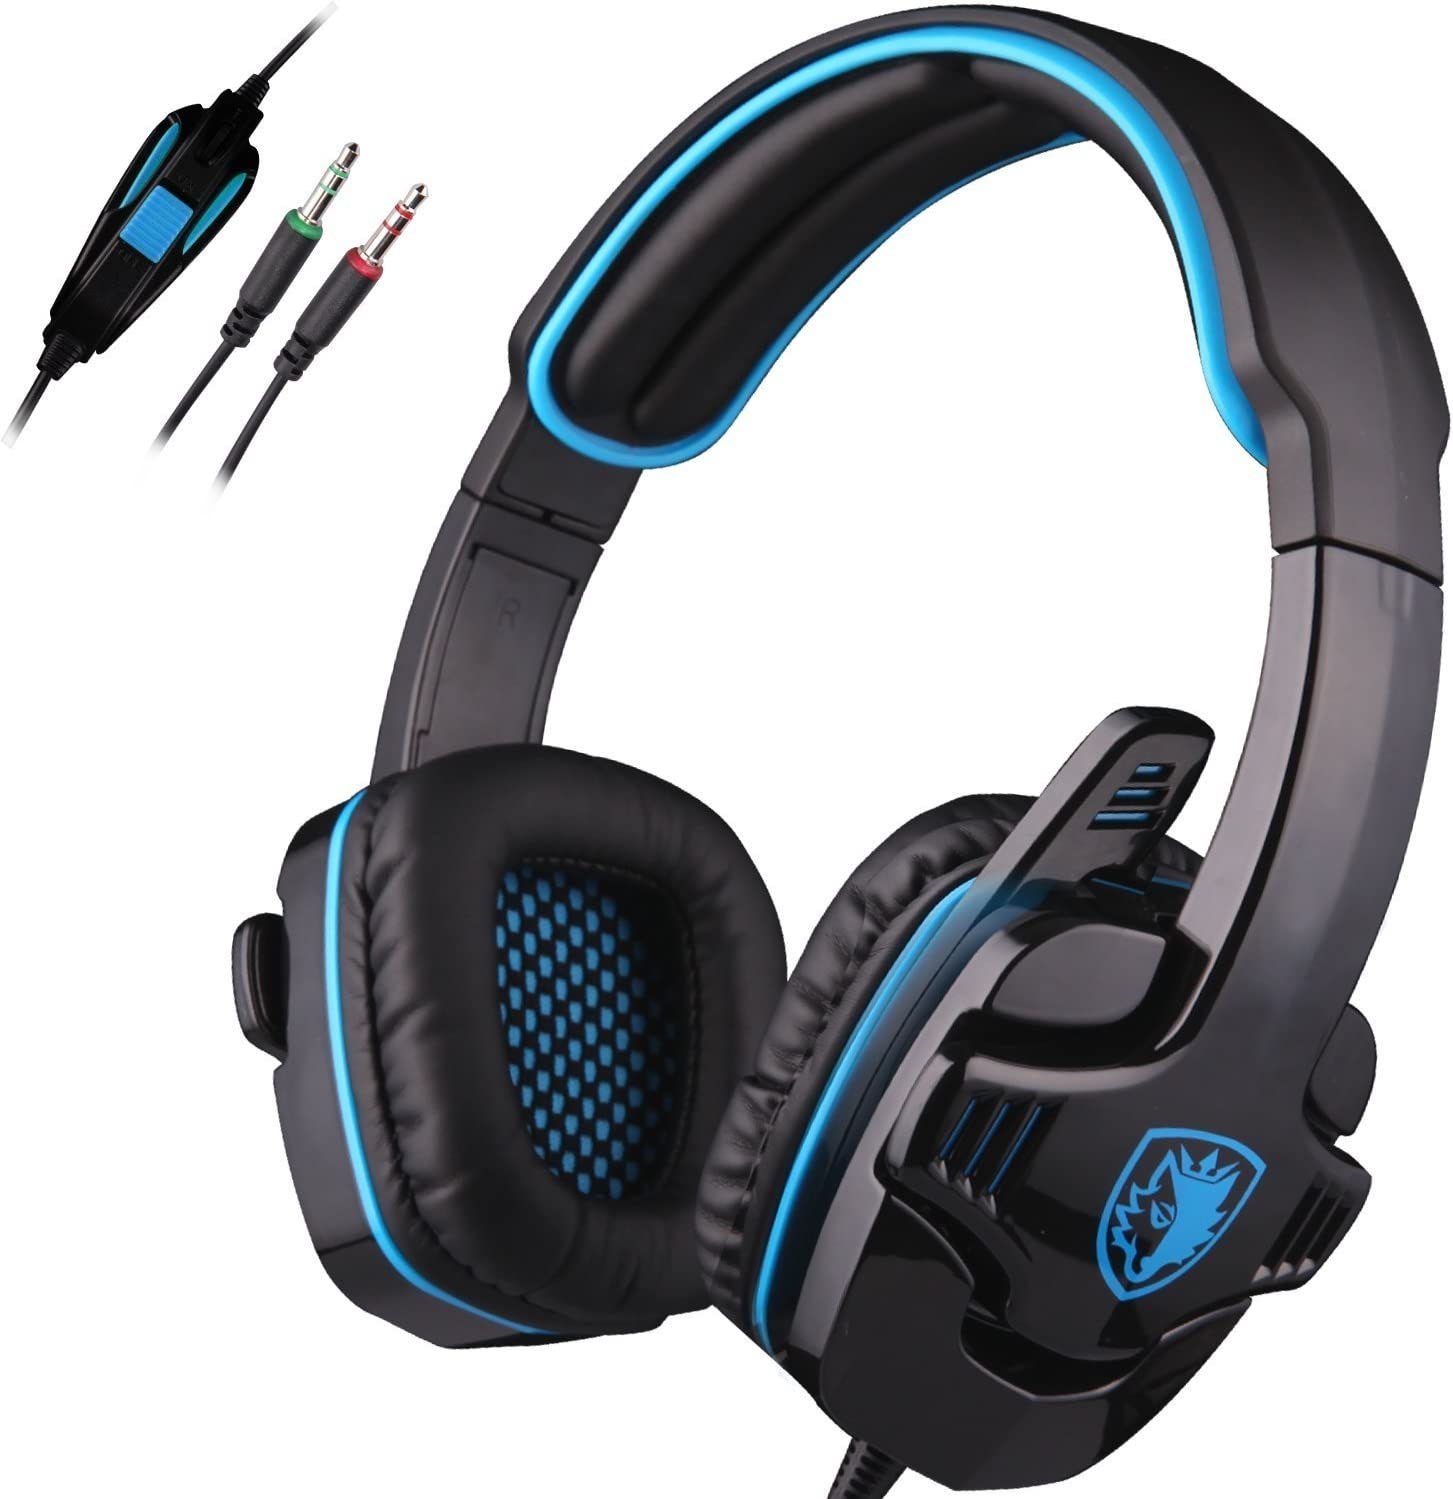 SADES SA708 3.5mm Stereo Gaming Headset Headset with Microphone Blue